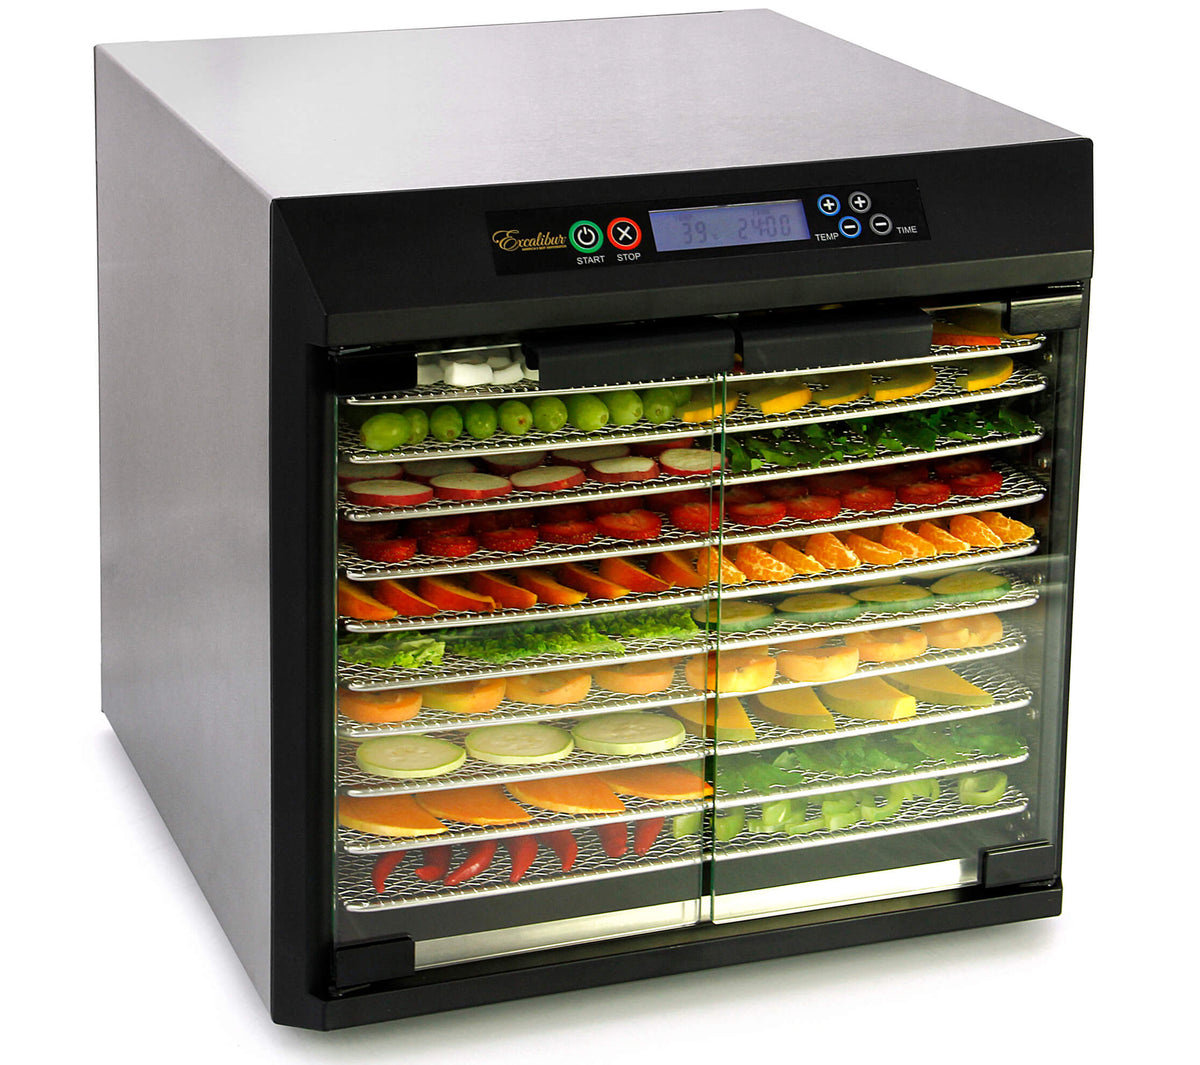 Excalibur EXC10EL 10 tray stainless steel digital dehydrator with glass armoured doors closed and food on the trays.